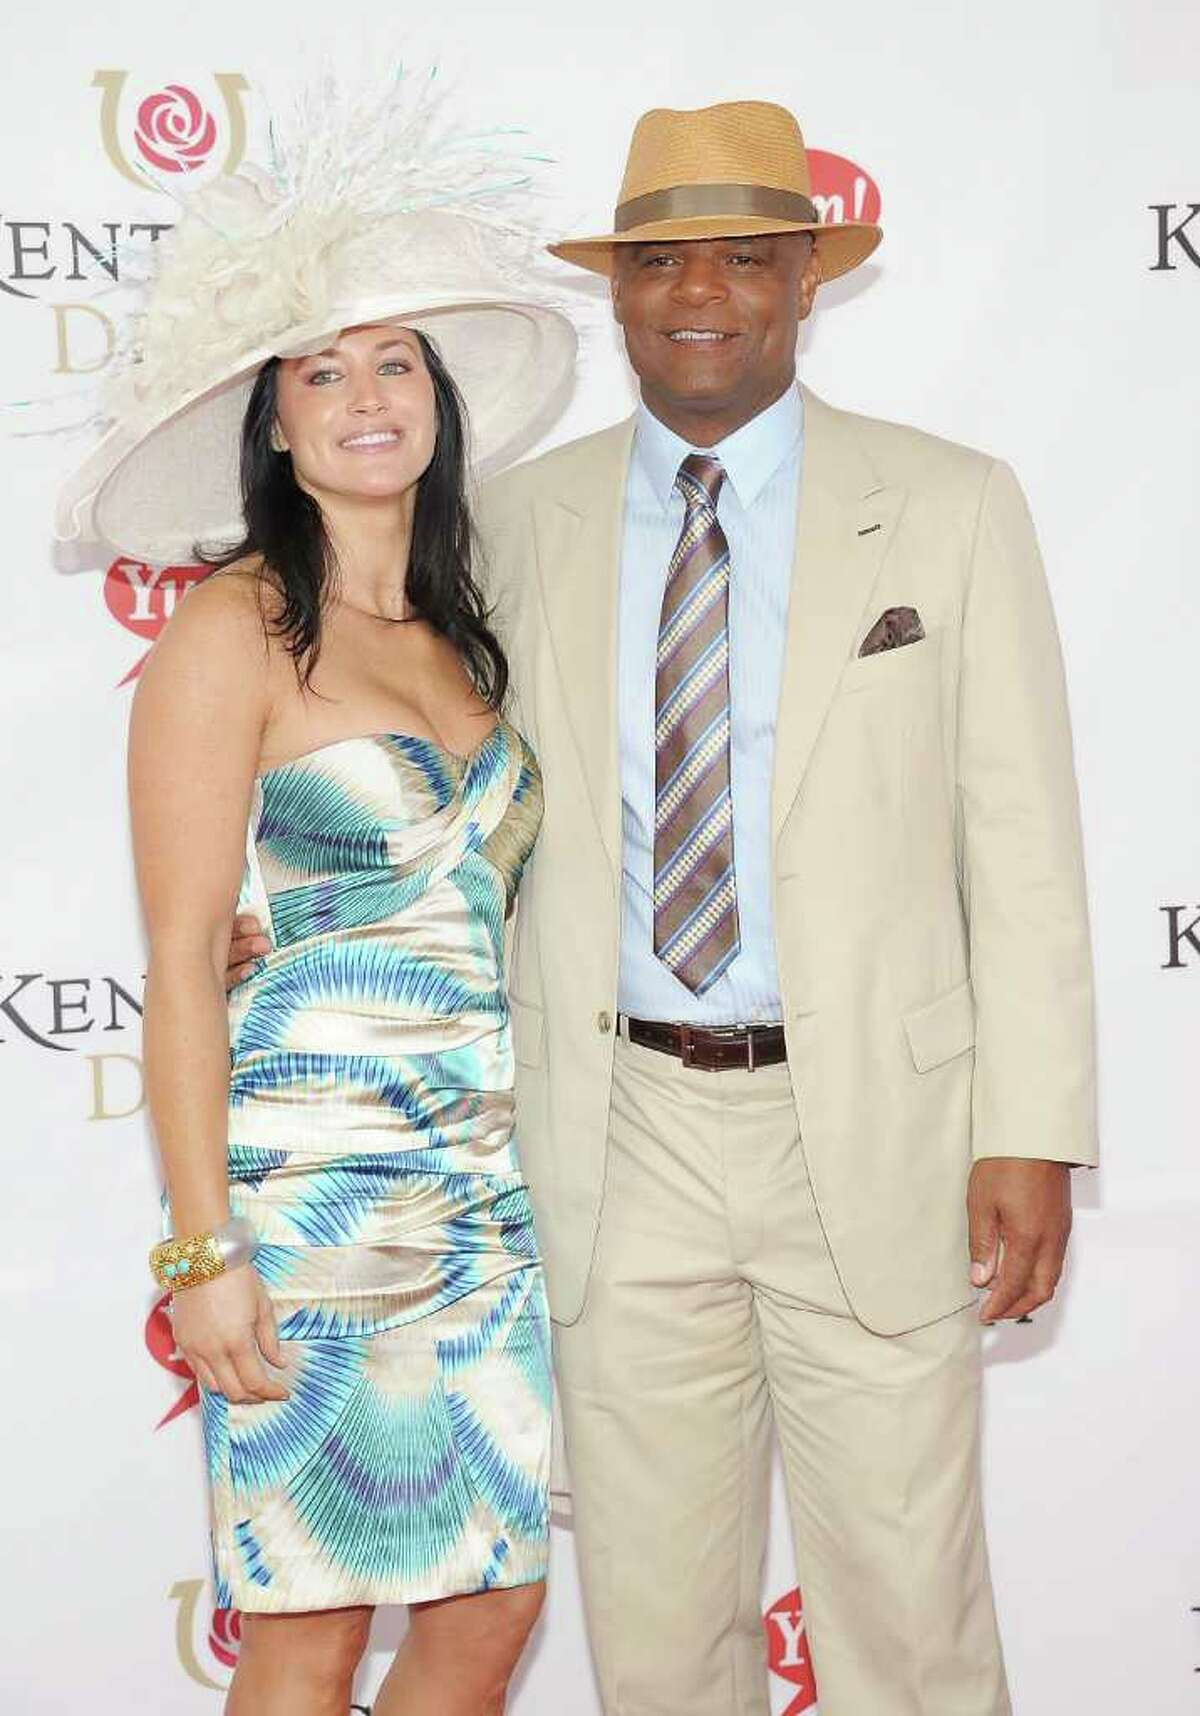 LOUISVILLE, KY - MAY 07: Former Professional Football Player Warren Moon (R) and Mandy Moon attend the 137th Kentucky Derby at Churchill Downs on May 7, 2011 in Louisville, Kentucky. (Photo by Michael Loccisano/Getty Images) *** Local Caption *** Mandy Moon;Warren Moon;